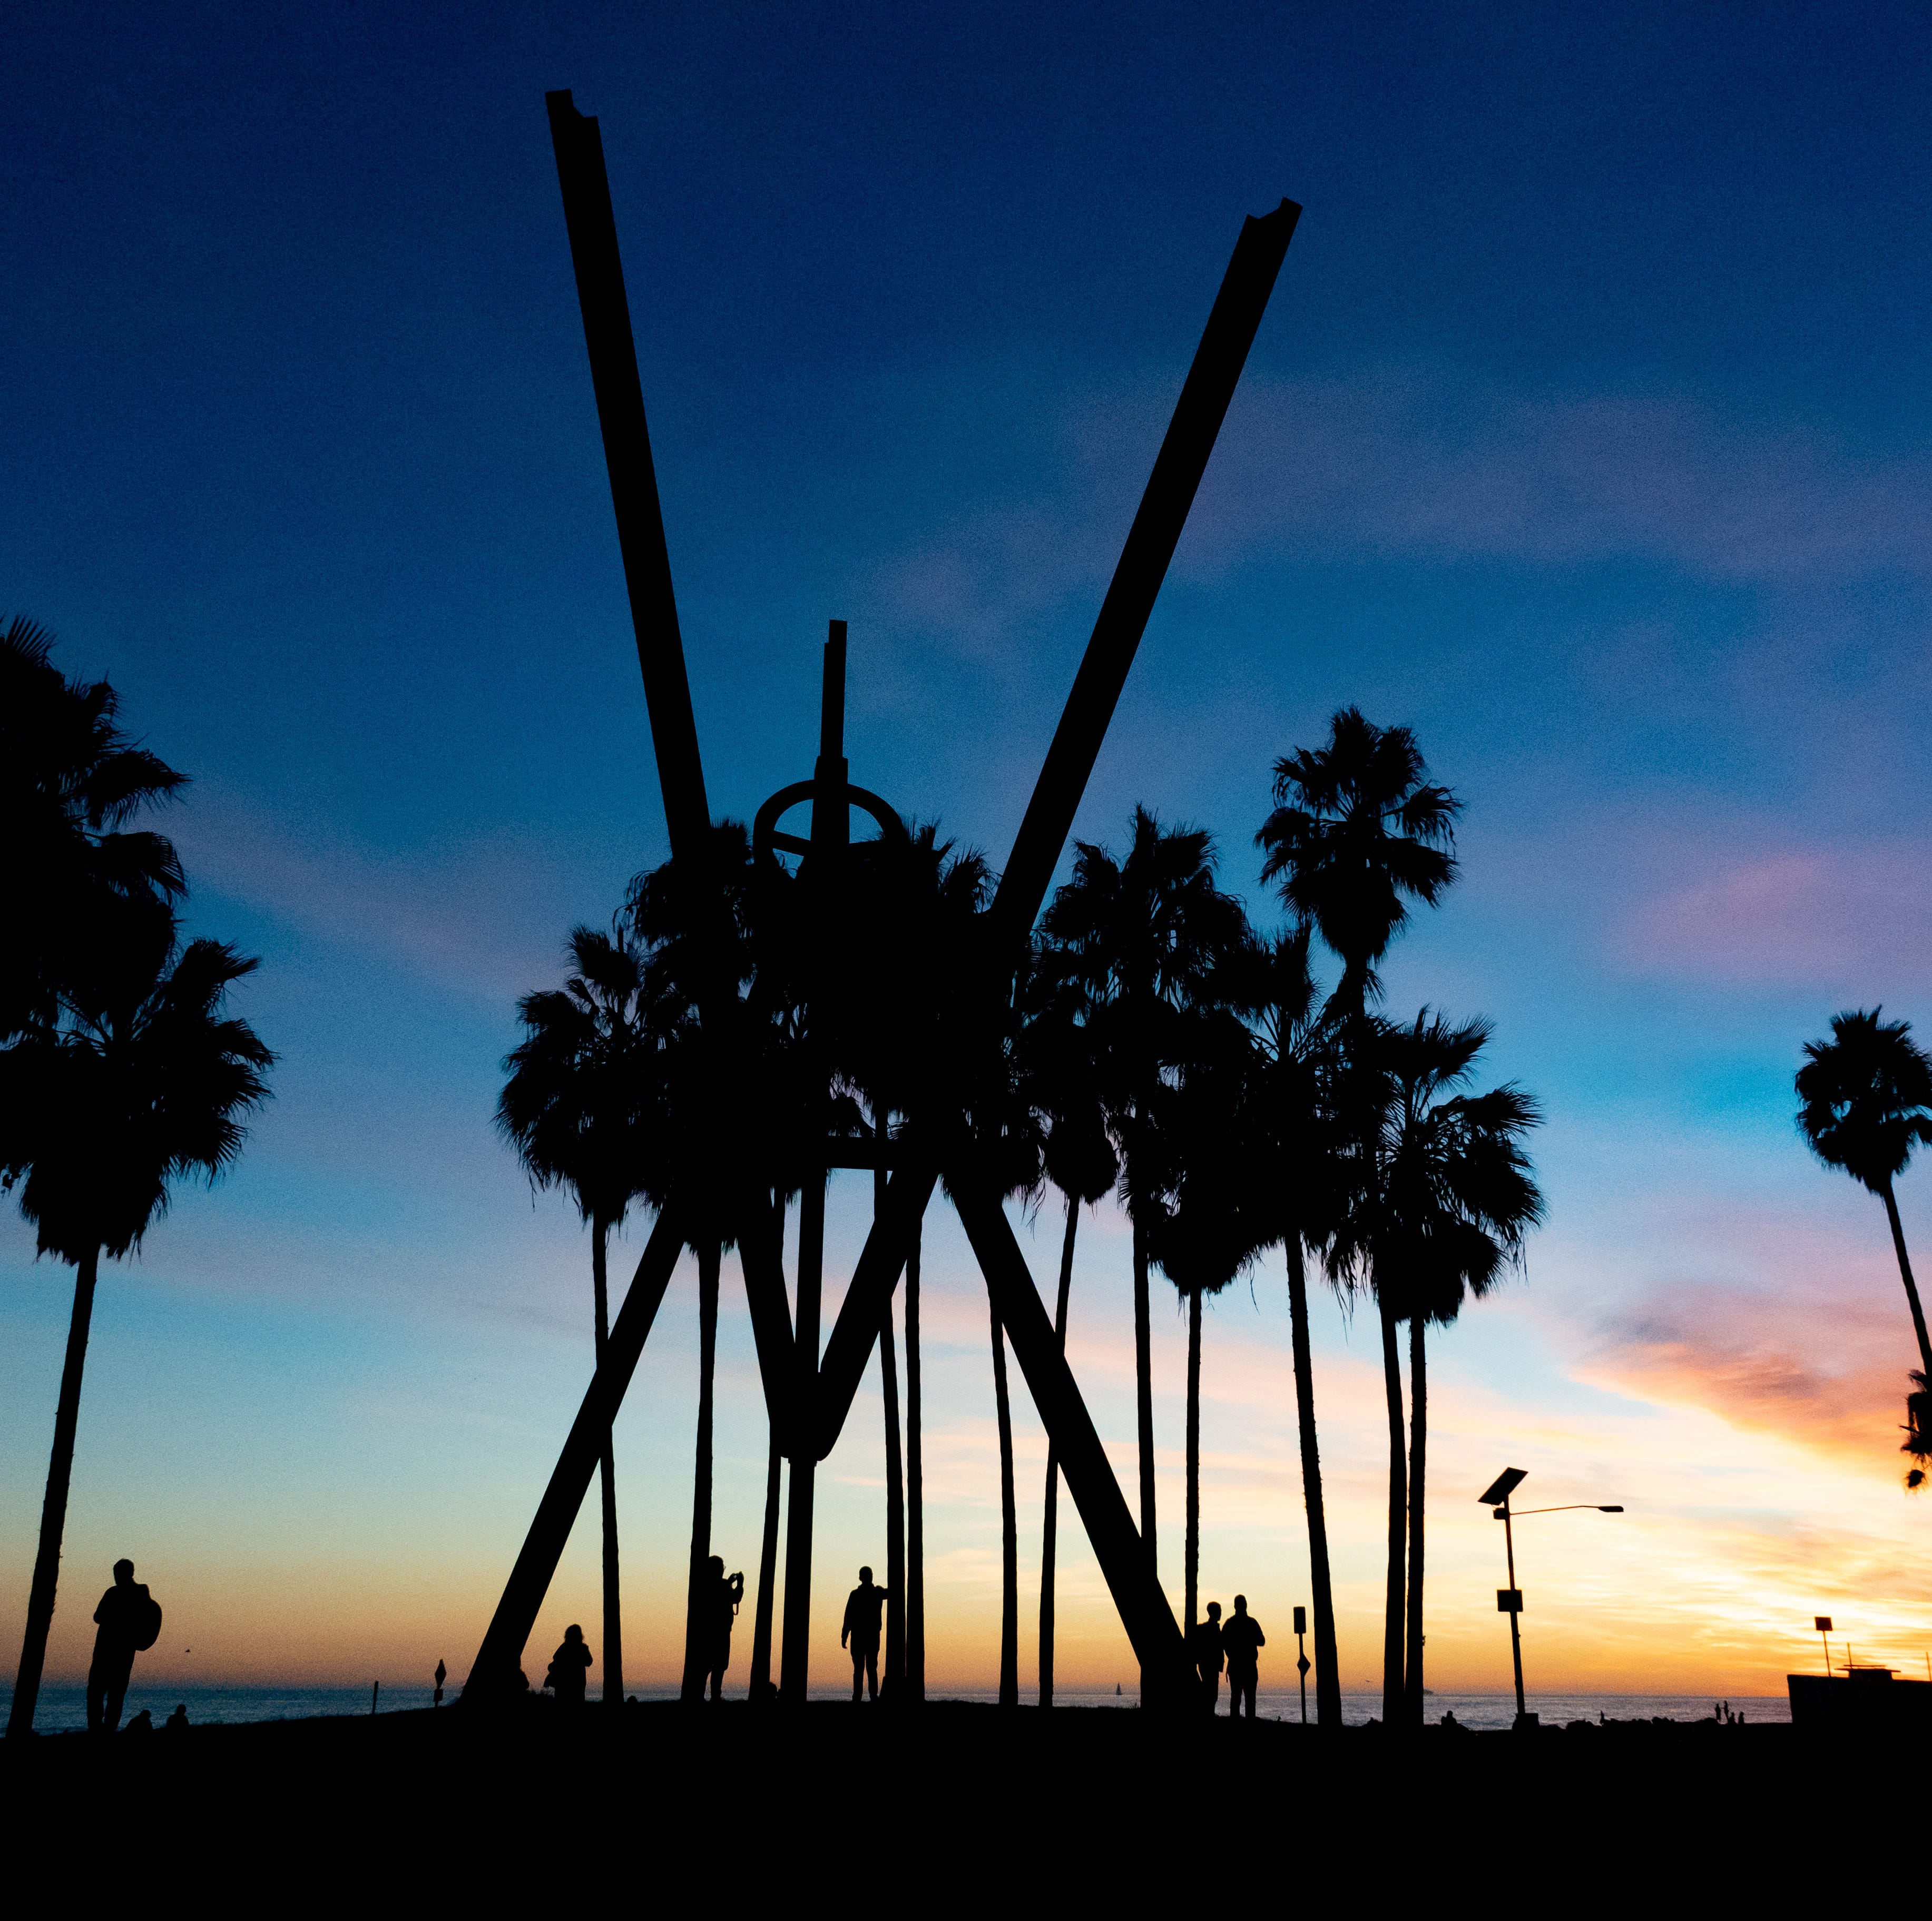 Photo tour: People watching, street art in wild Venice Beach, California